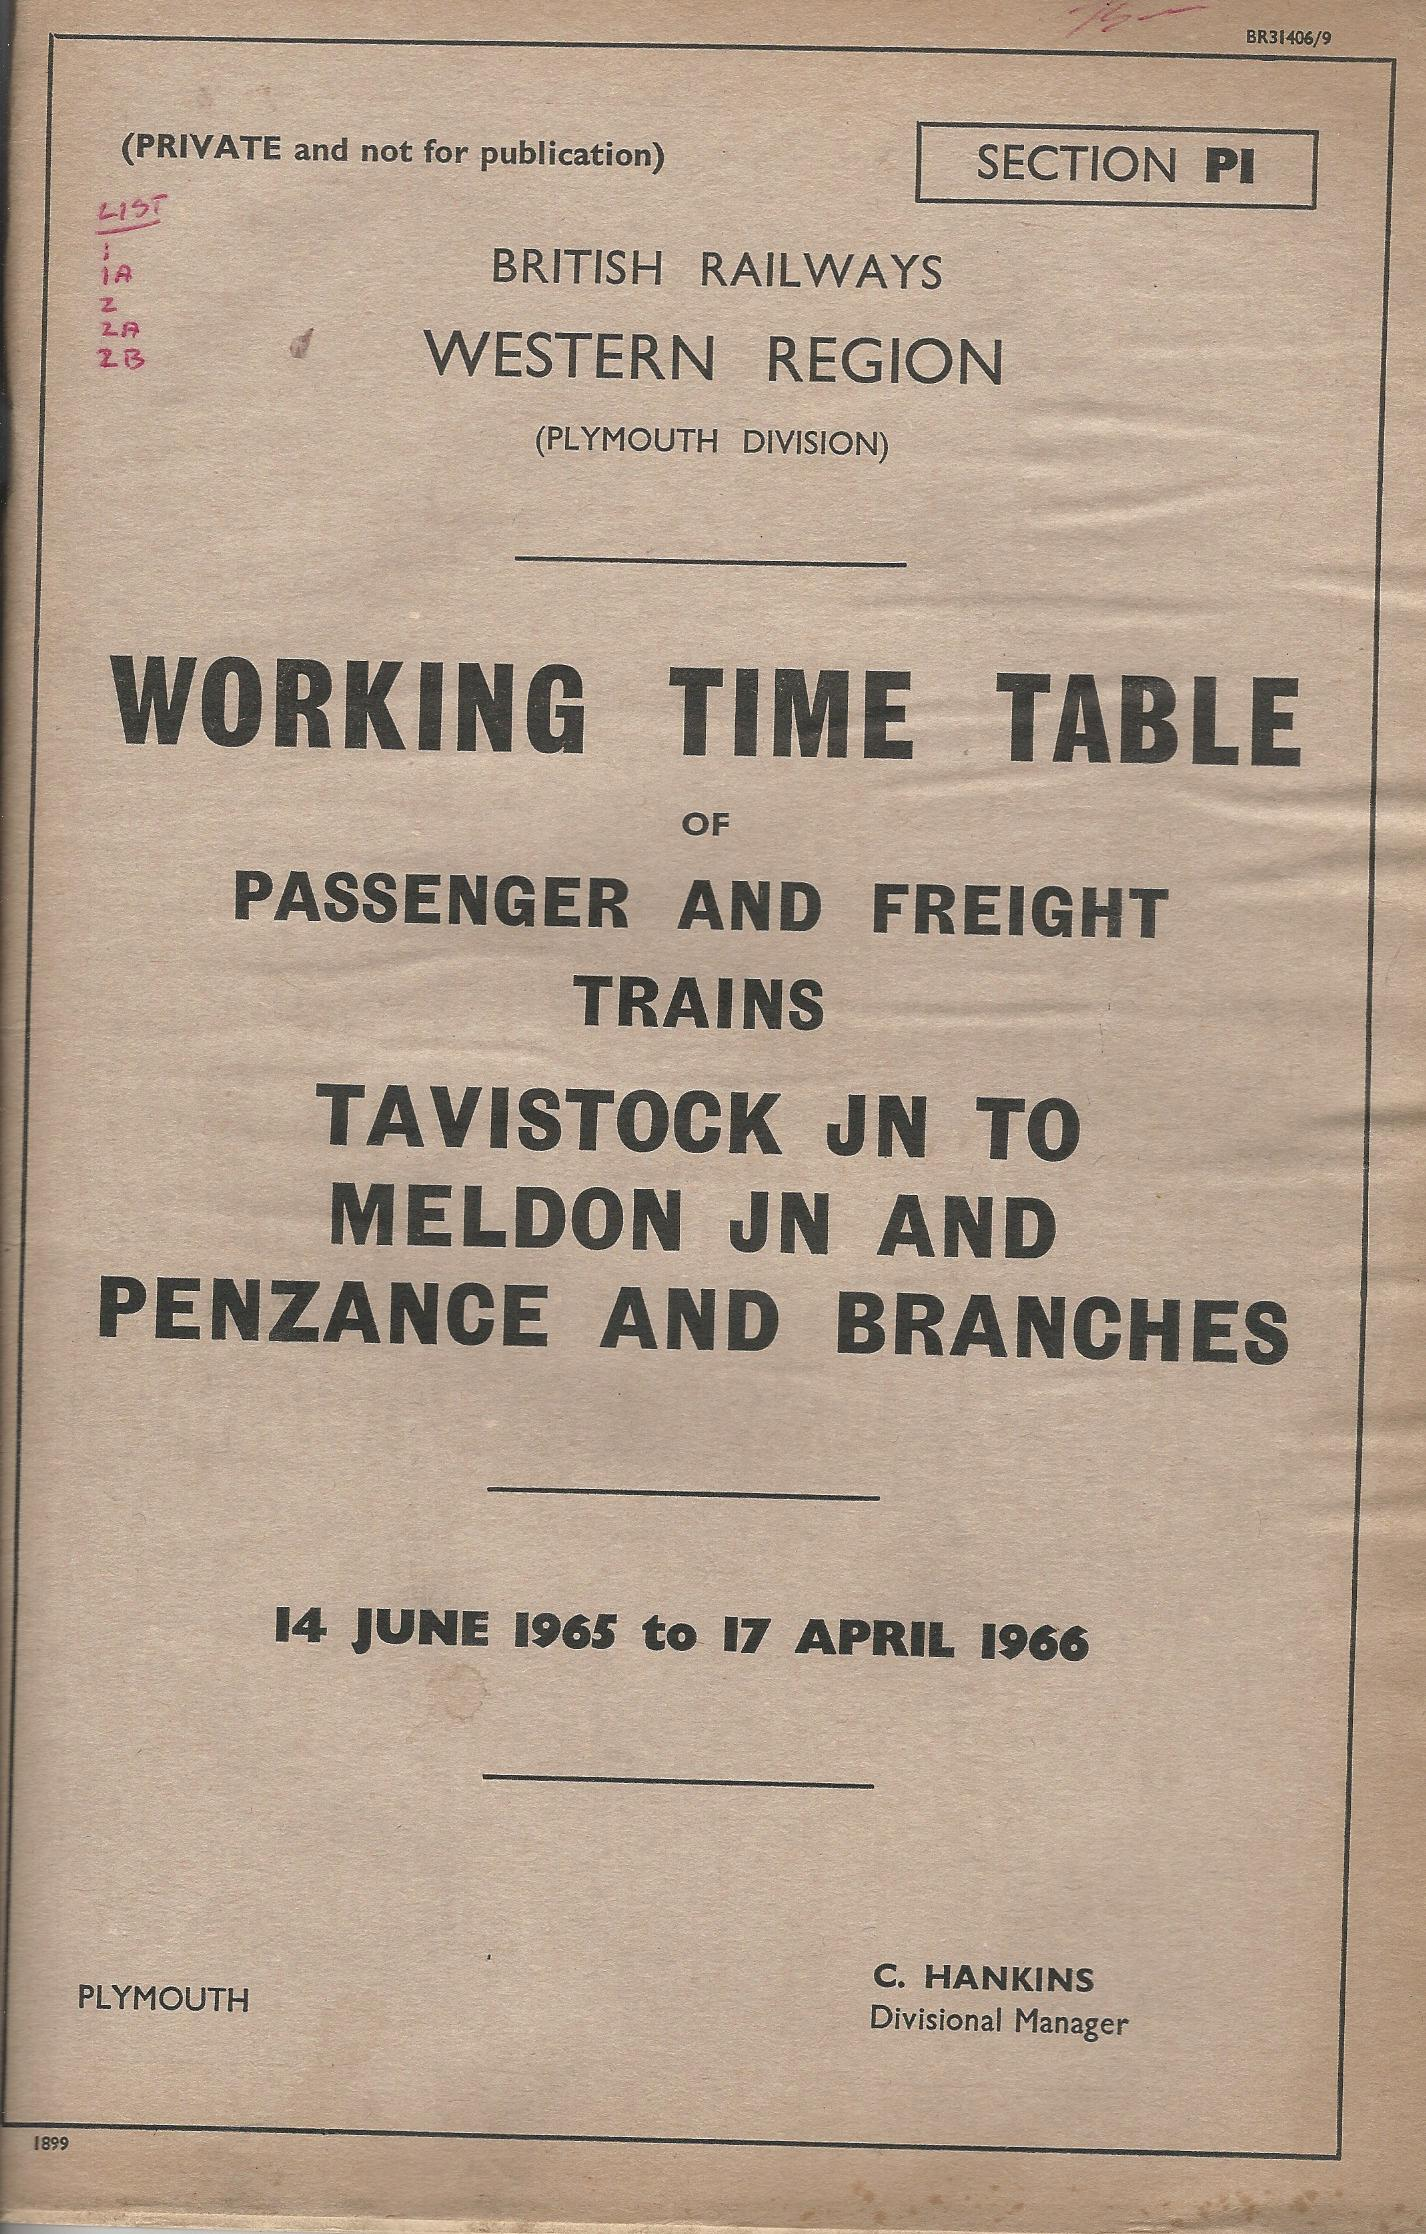 Image for British Railways Western Region: Working Time Table of Passenger and Freight Trains: Tavistock JN to Meldon JN and Penzance and branches.